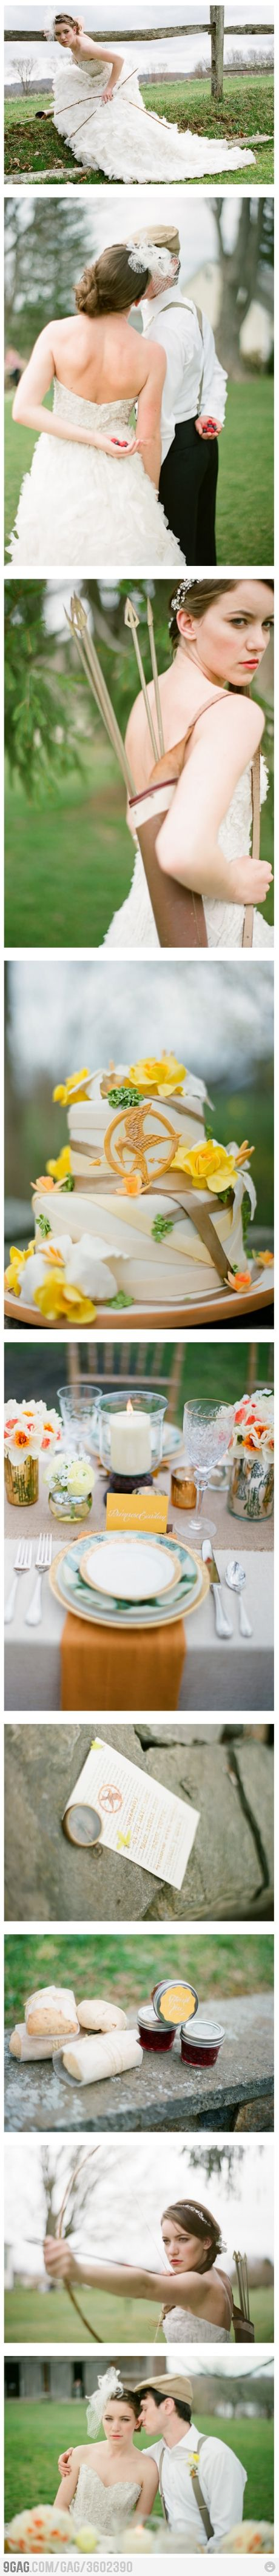 """""""The Hunger Games"""" Themed Wedding. I'd say they're fans: Ideas, Games Theme, The Hunger Games, Stuff, Dreams, Hunger Games Wedding, Theme Wedding, Wedding Theme, Themed Weddings"""